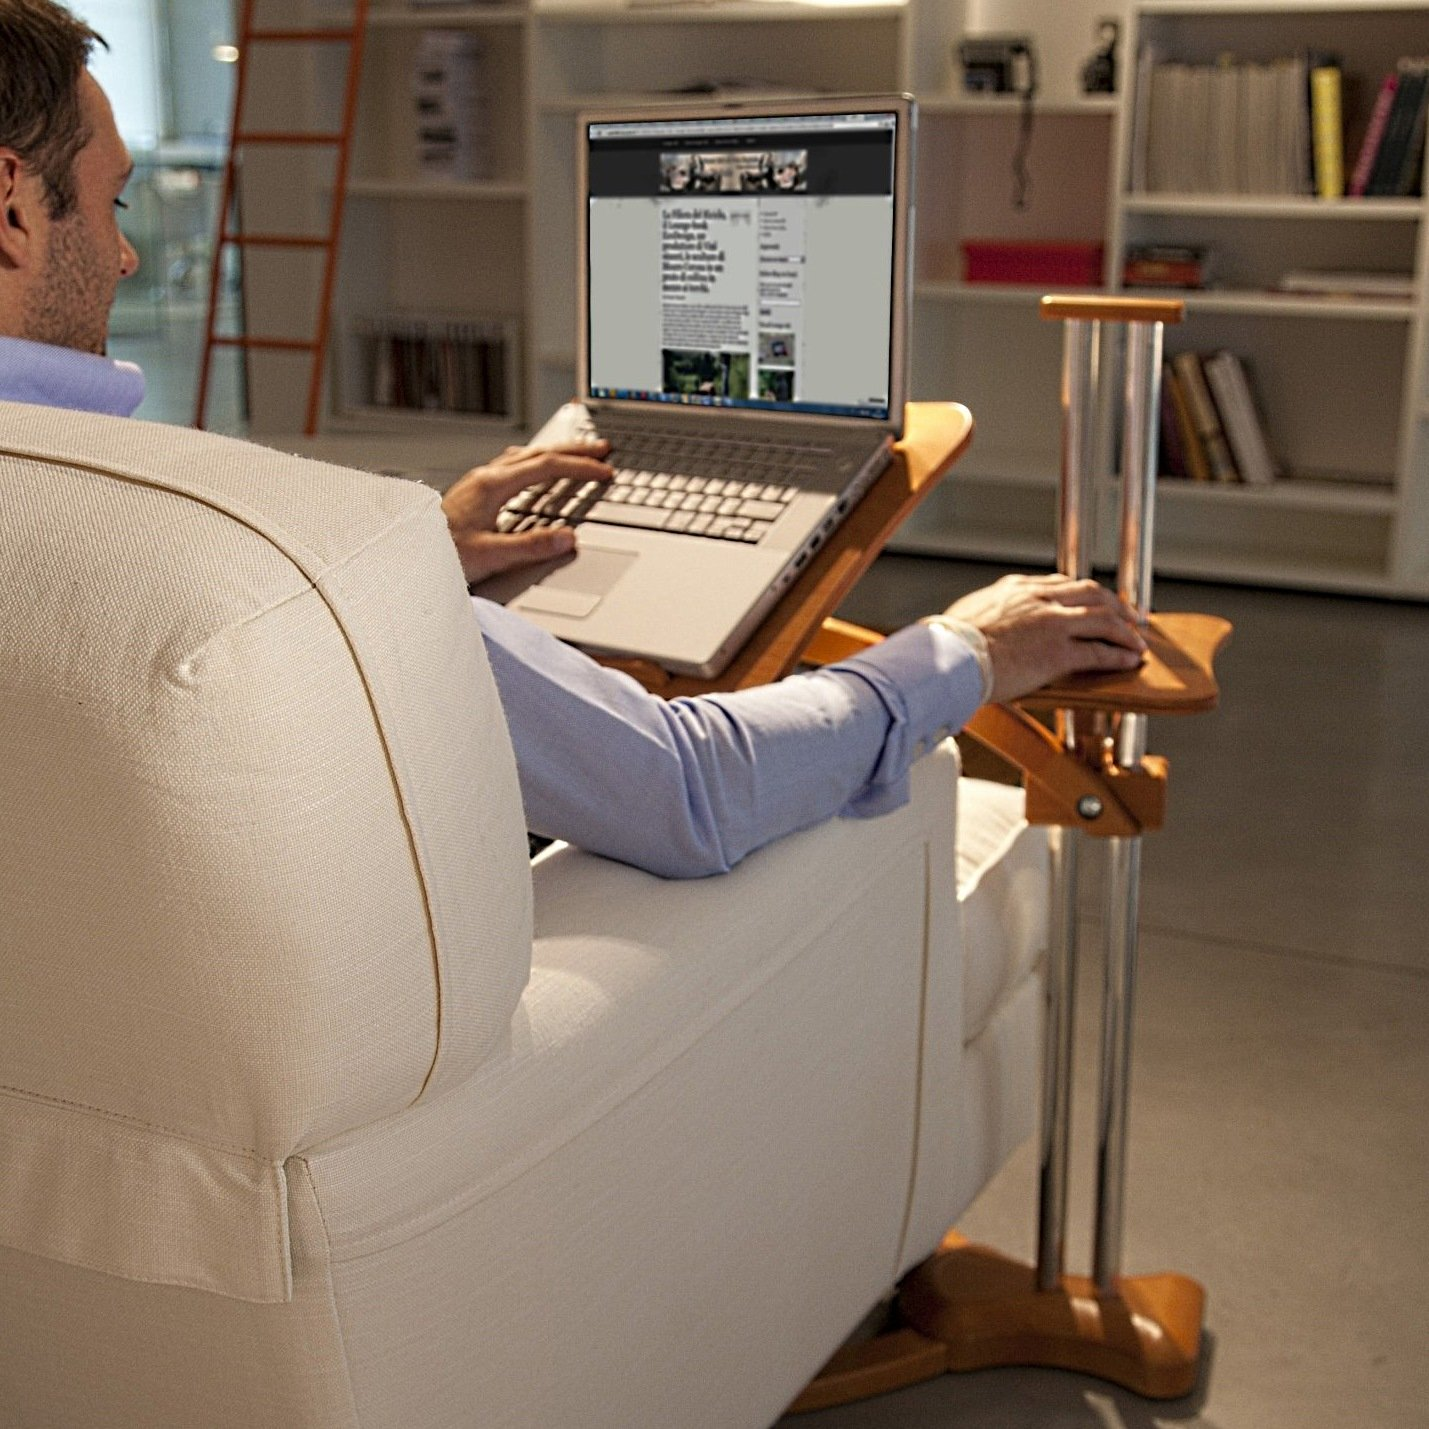 Lounge-wood Hot - Laptop Table by Lounge-Tek srl 100% Made in Italy